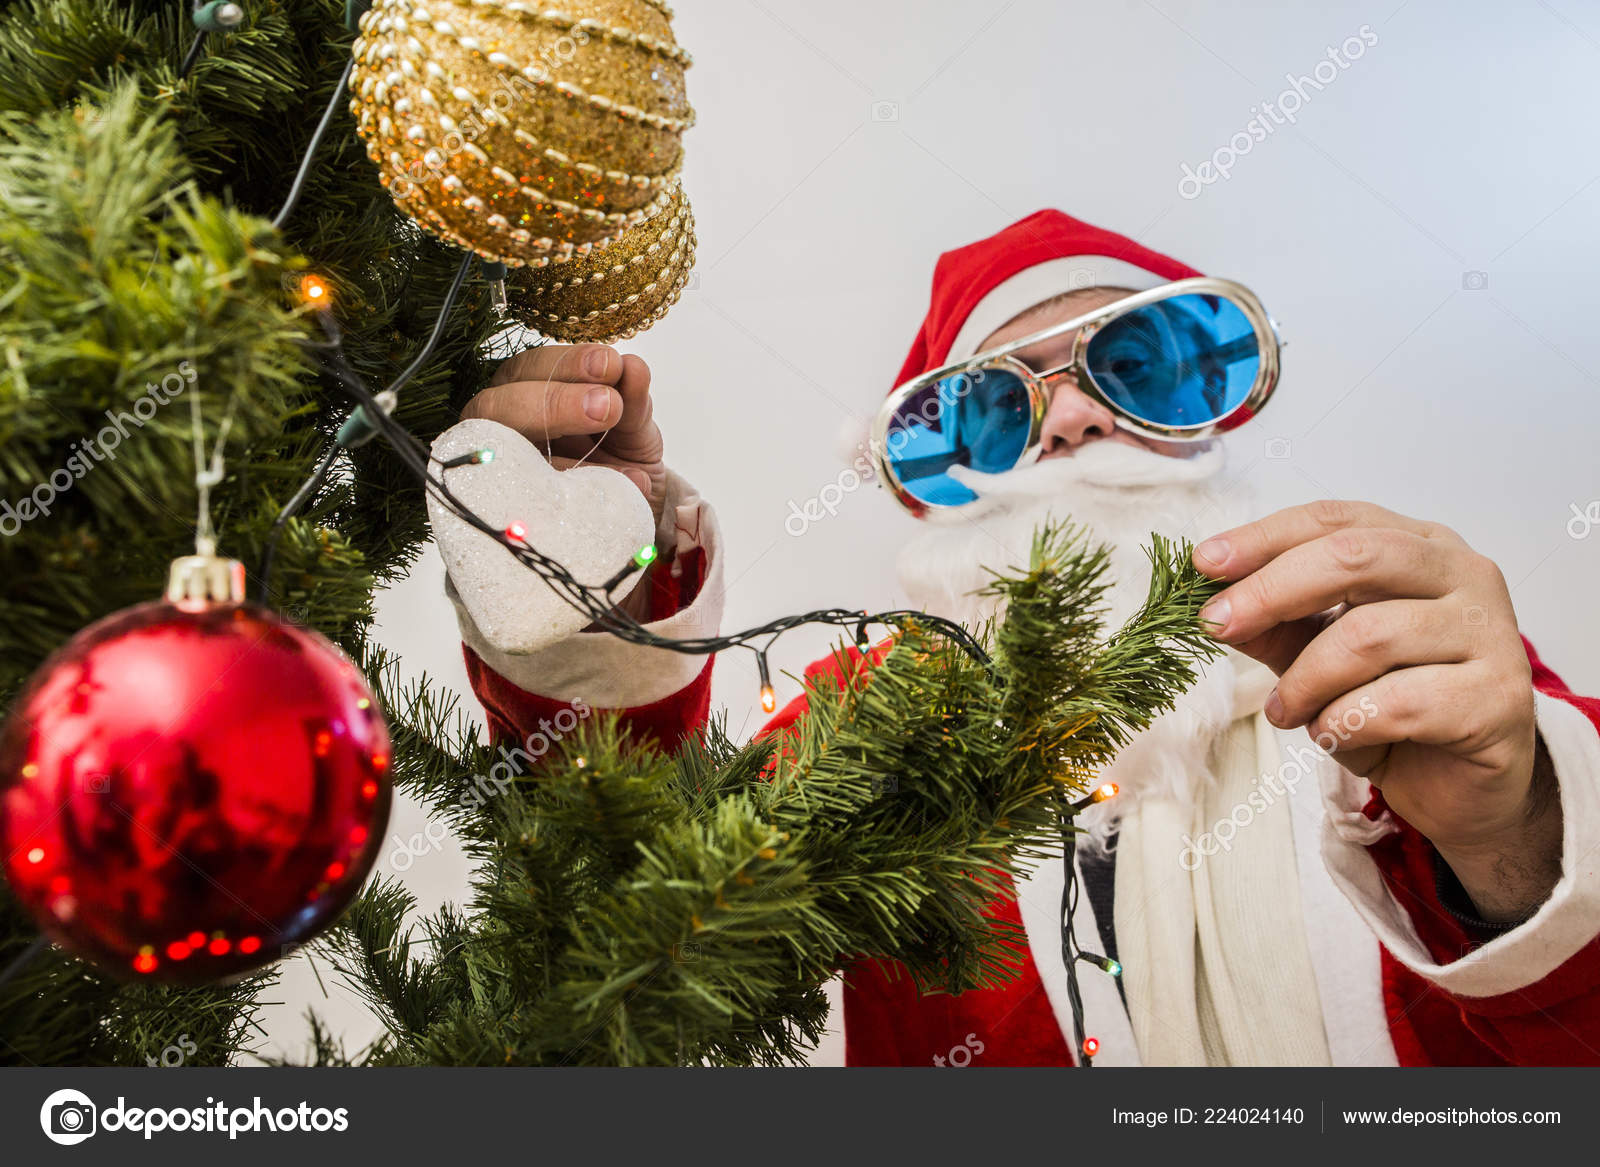 cute hipster santa claus on white background new year and christmas celebration concept photo by denissmile